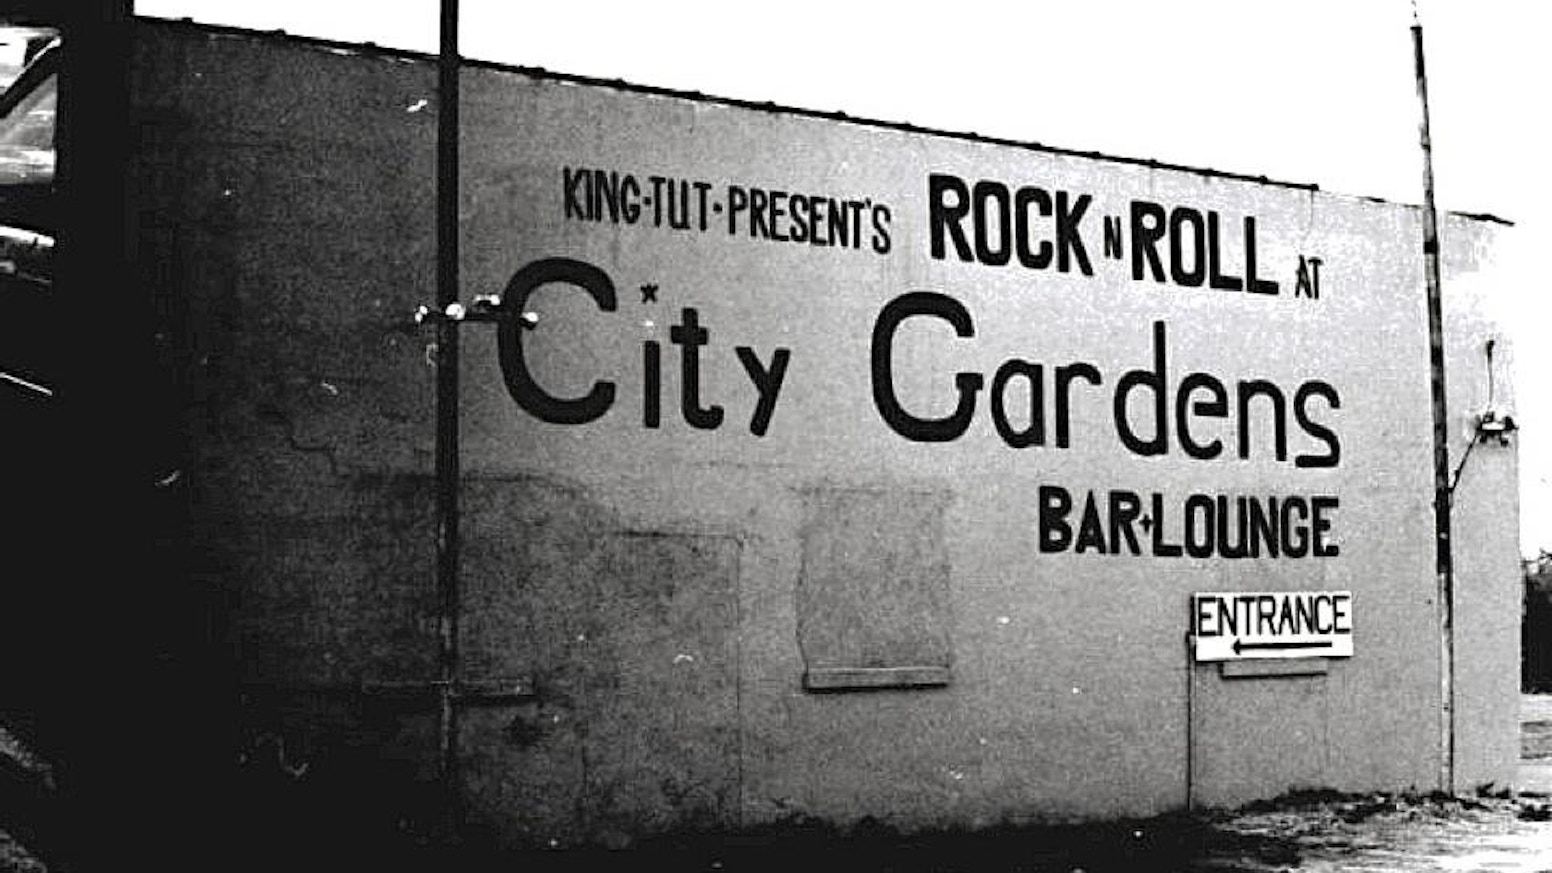 The site of legendary Trenton punk venue City Gardens is up